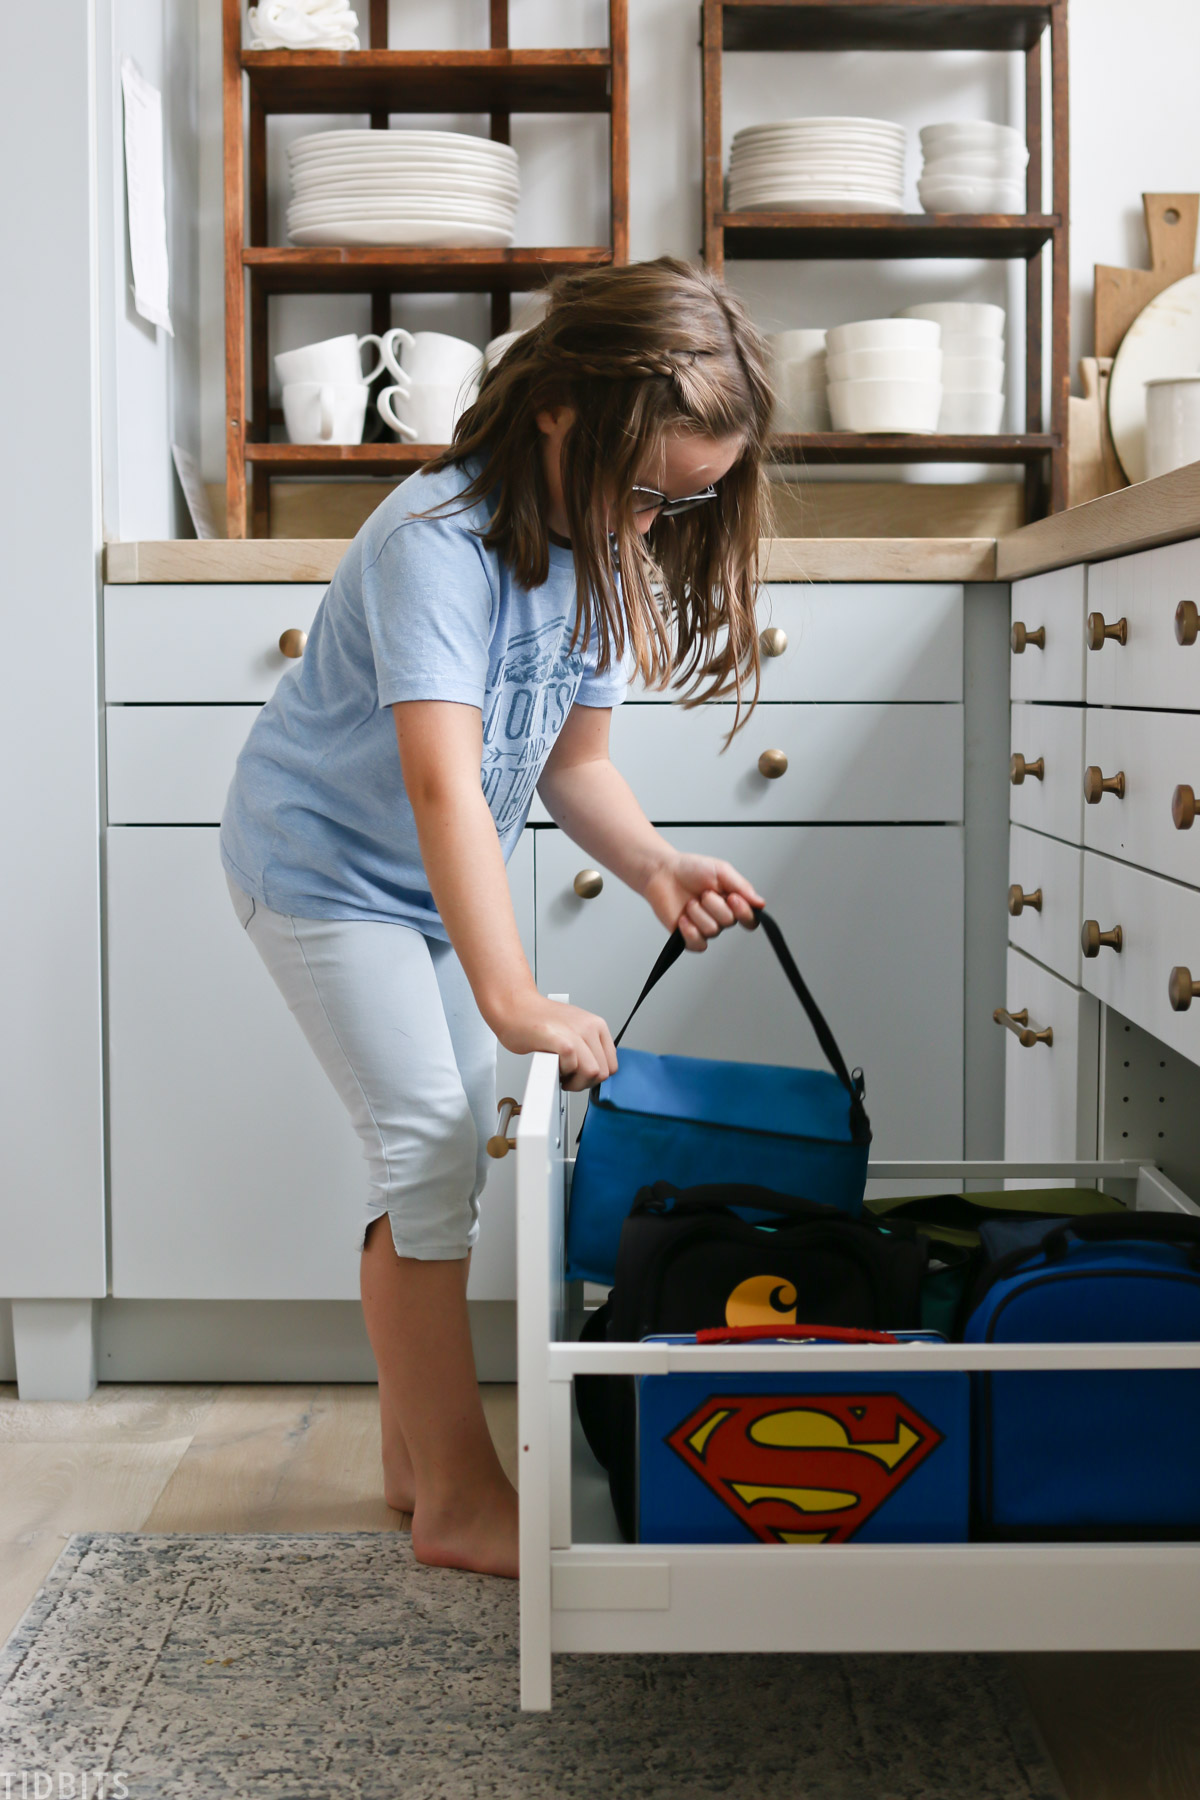 young girl grabs blue lunchbox out of kitchen drawer